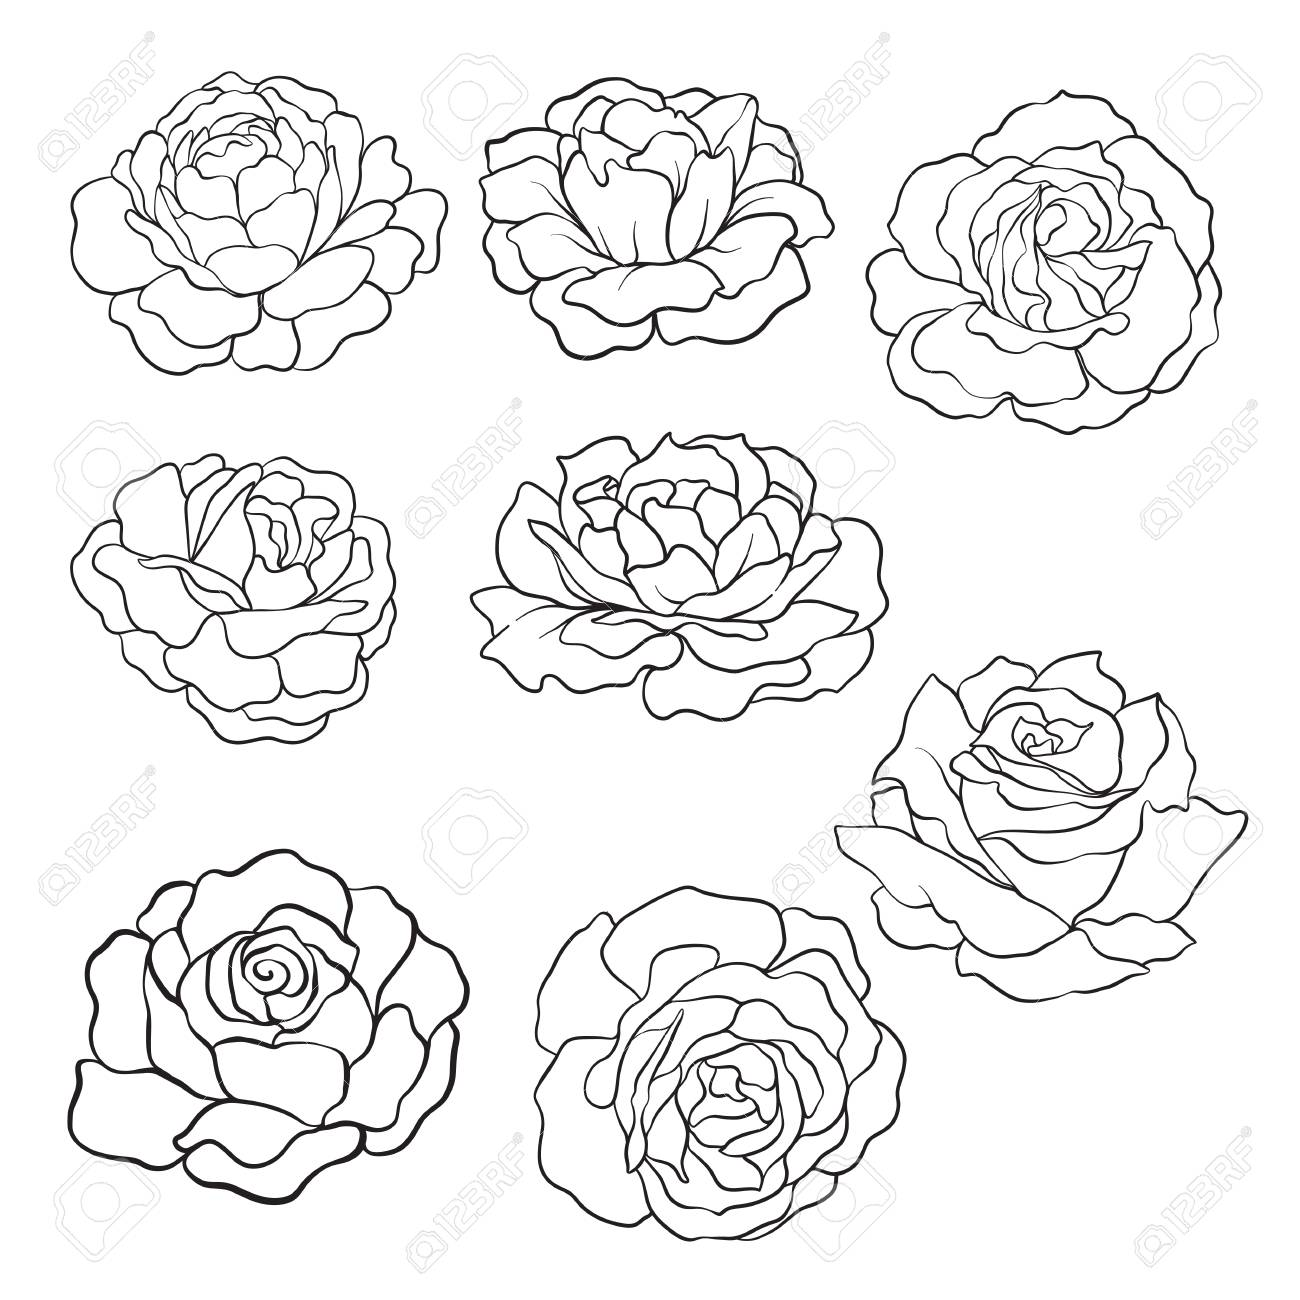 Set of isolated rose outline drawing stock line vector illustration stock vector